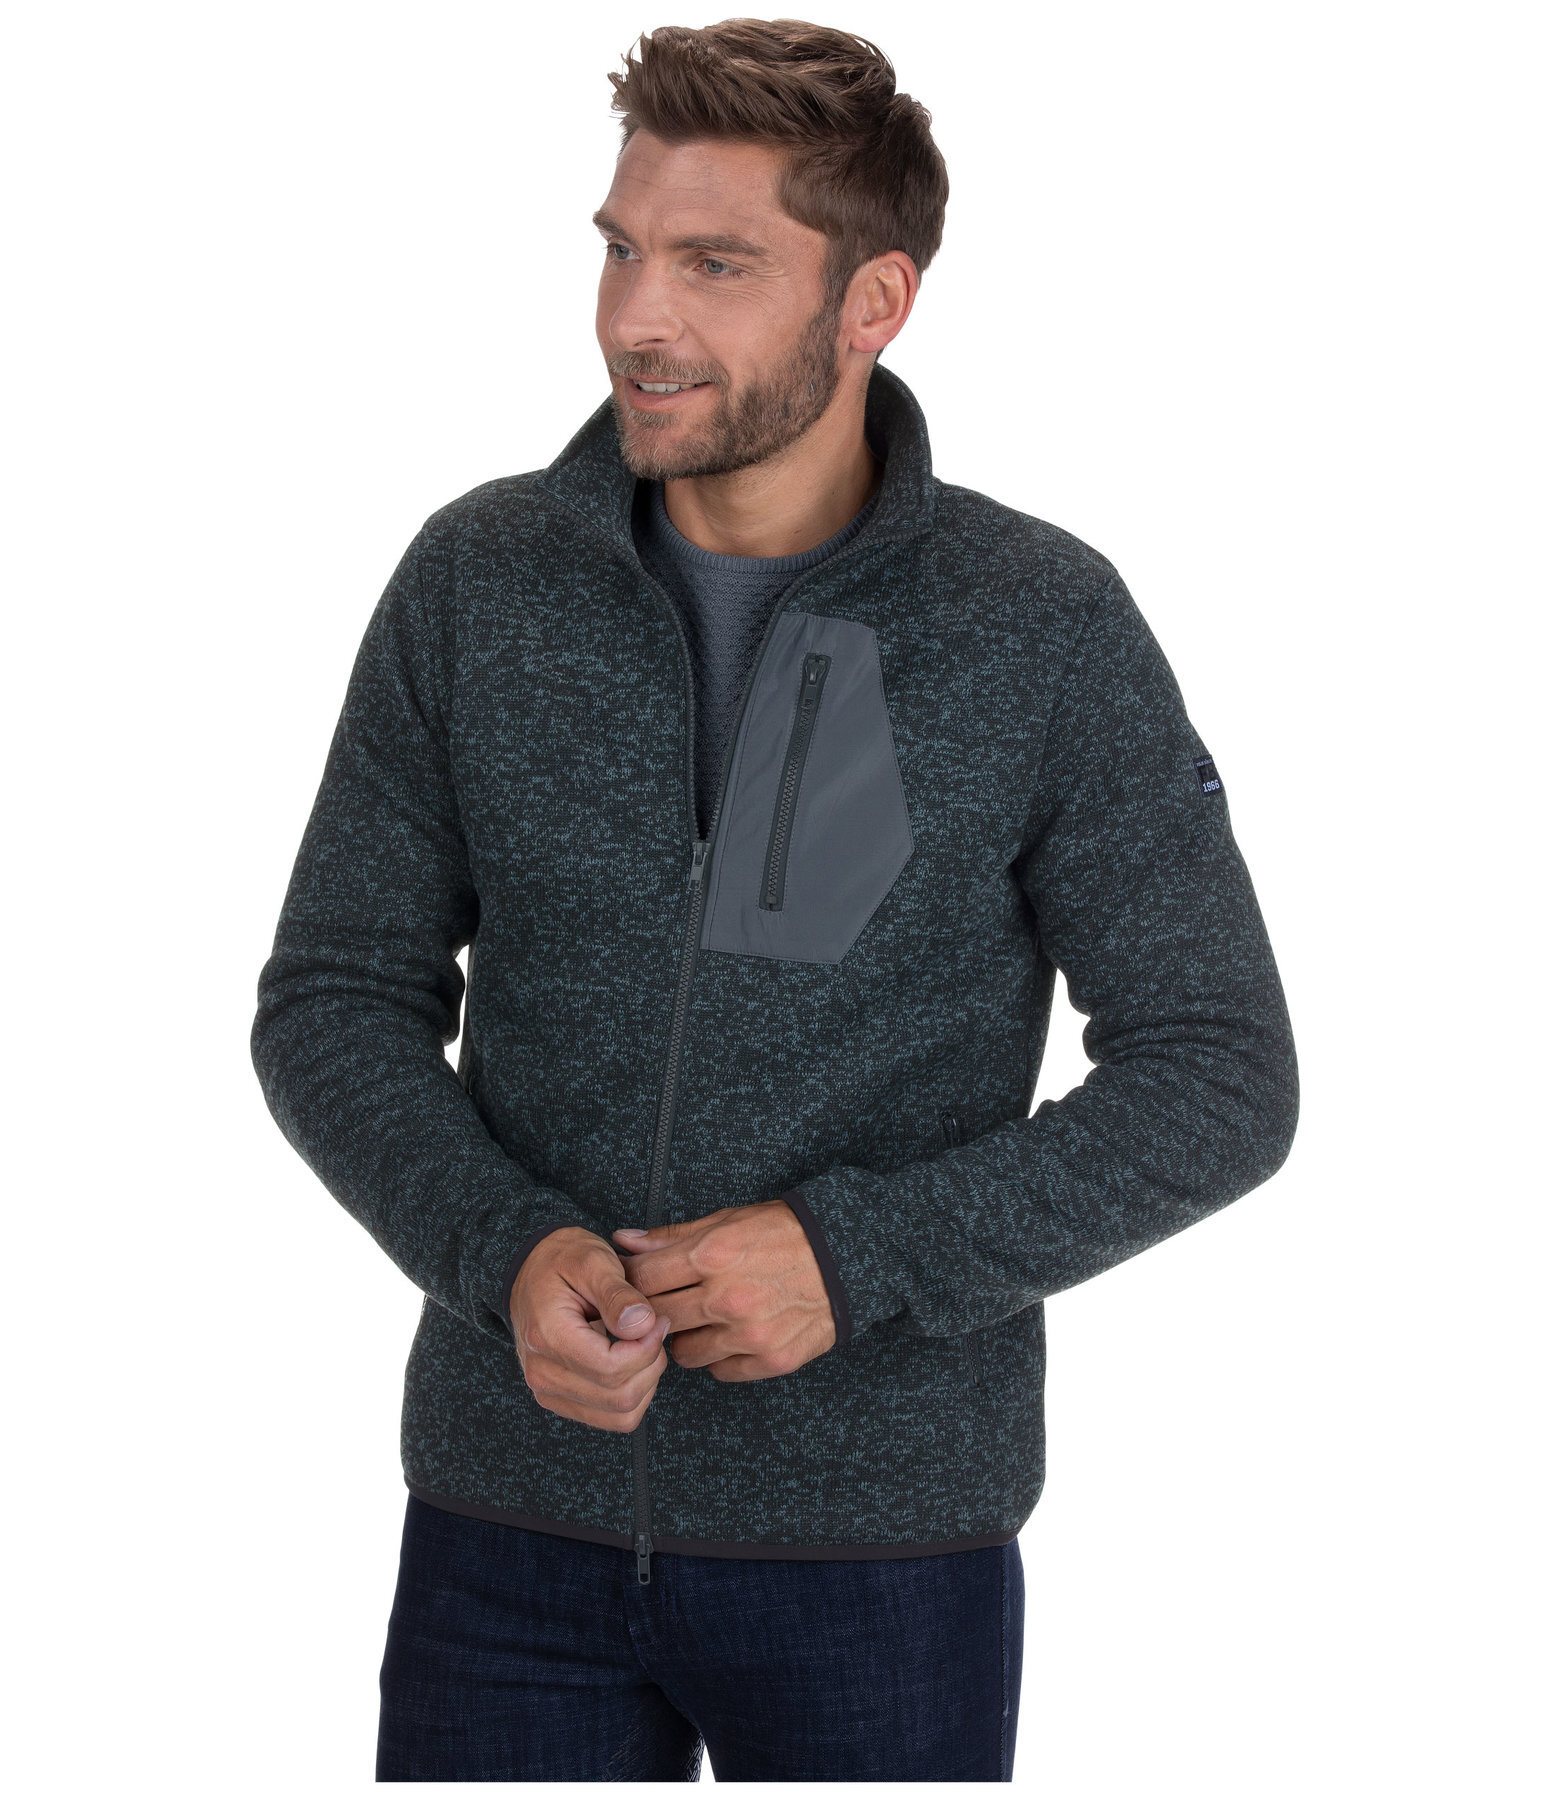 Knitted Fleece Jacket Lewis